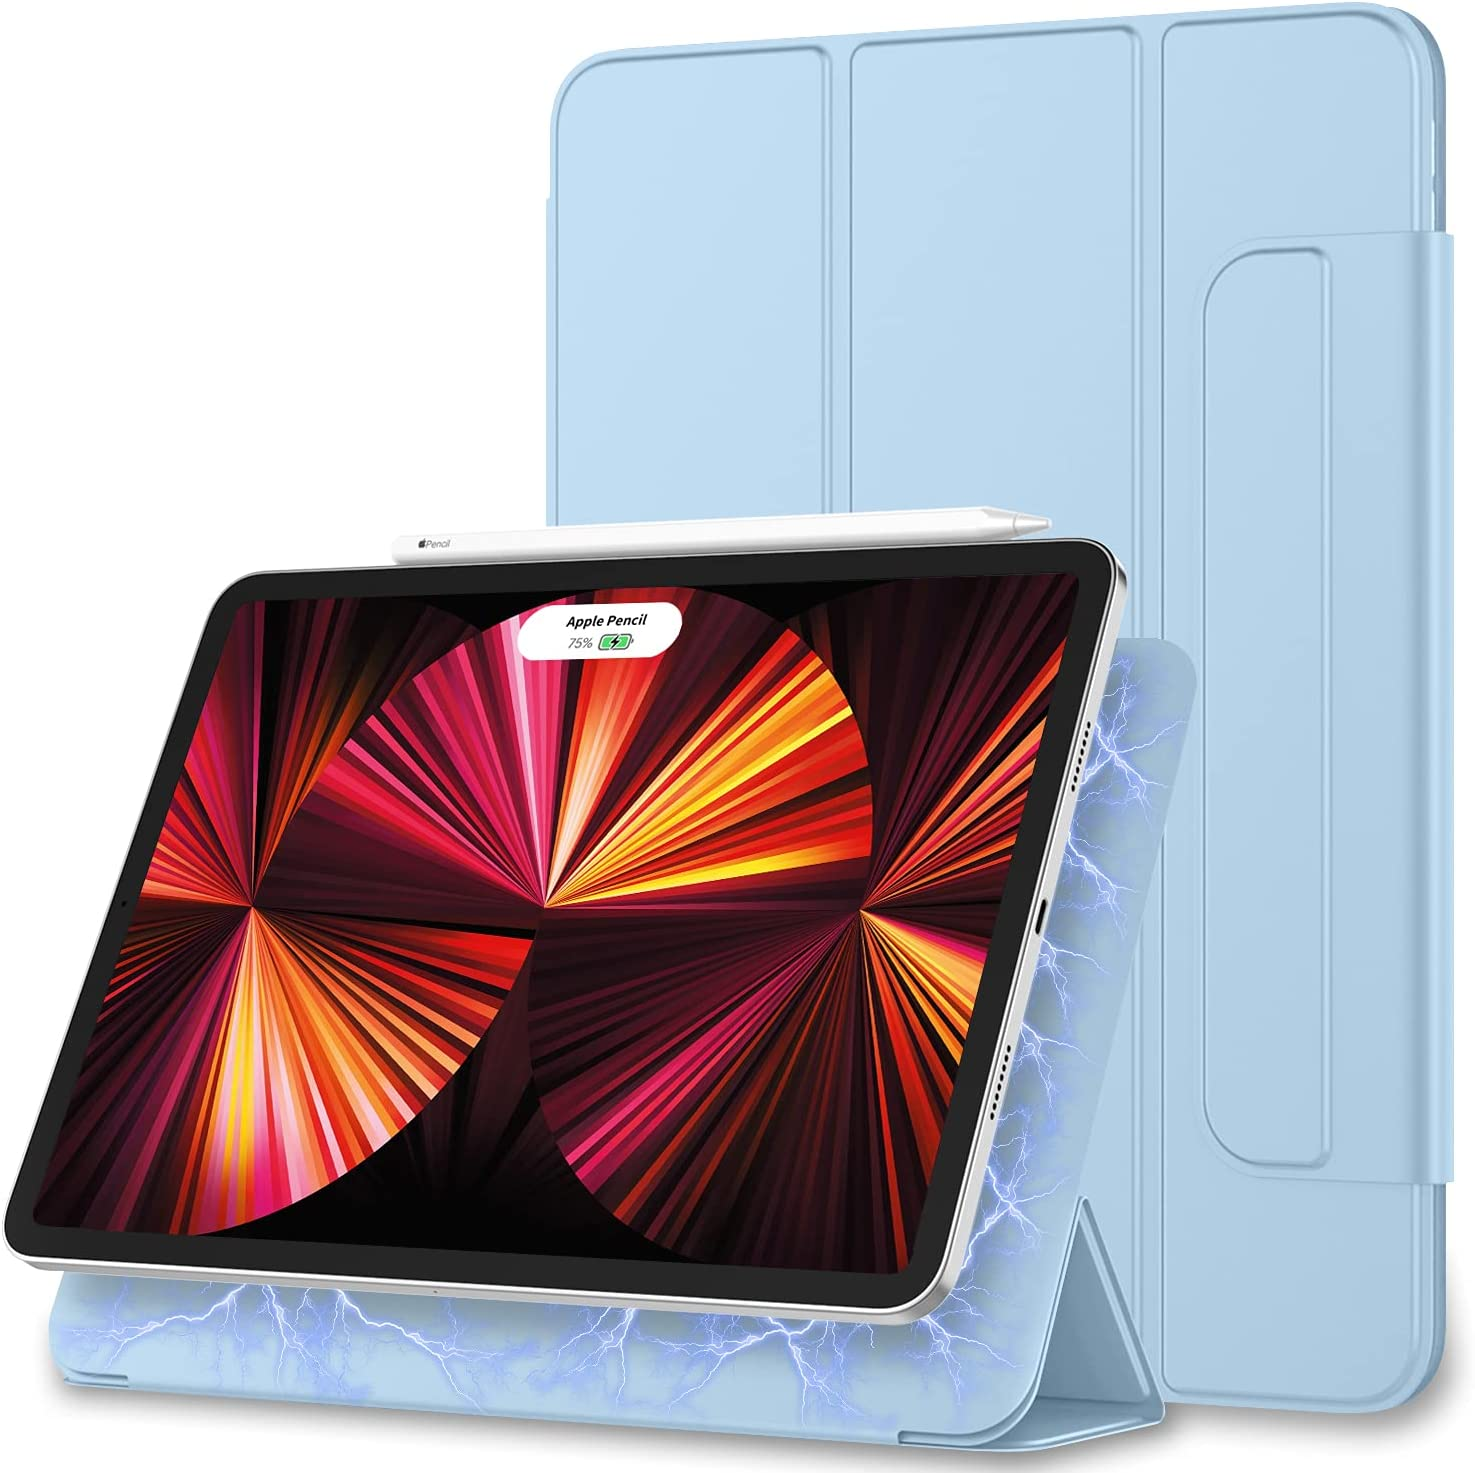 ZryXal iPad Pro 11 Inch Case 2021(3rd Generation), Rebound Magnetic Smart Case Cover with Convenient Magnetic Attachment and Auto Sleep/Wake Feature for 2021/2020 iPad Pro 11 (Sky Blue)